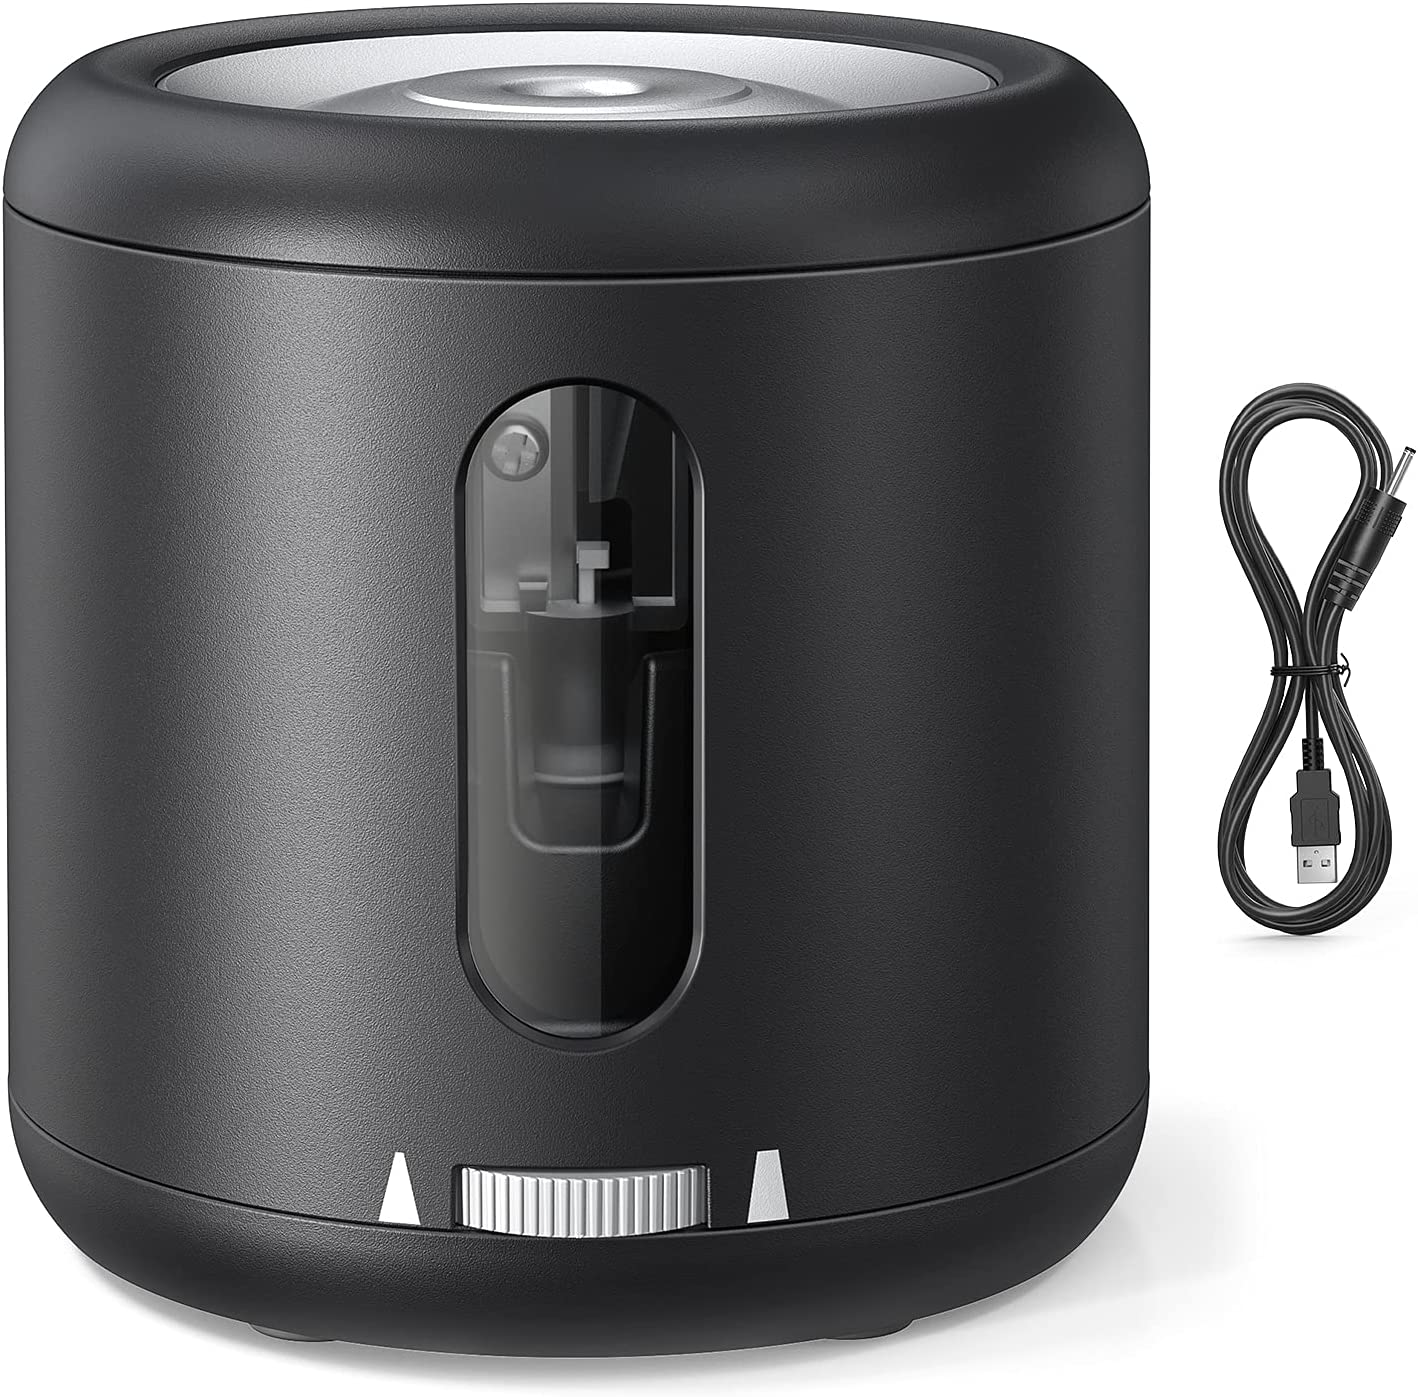 Officew Electric 25% OFF Pencil Sharpener USB Battery Operated Portable Bombing new work